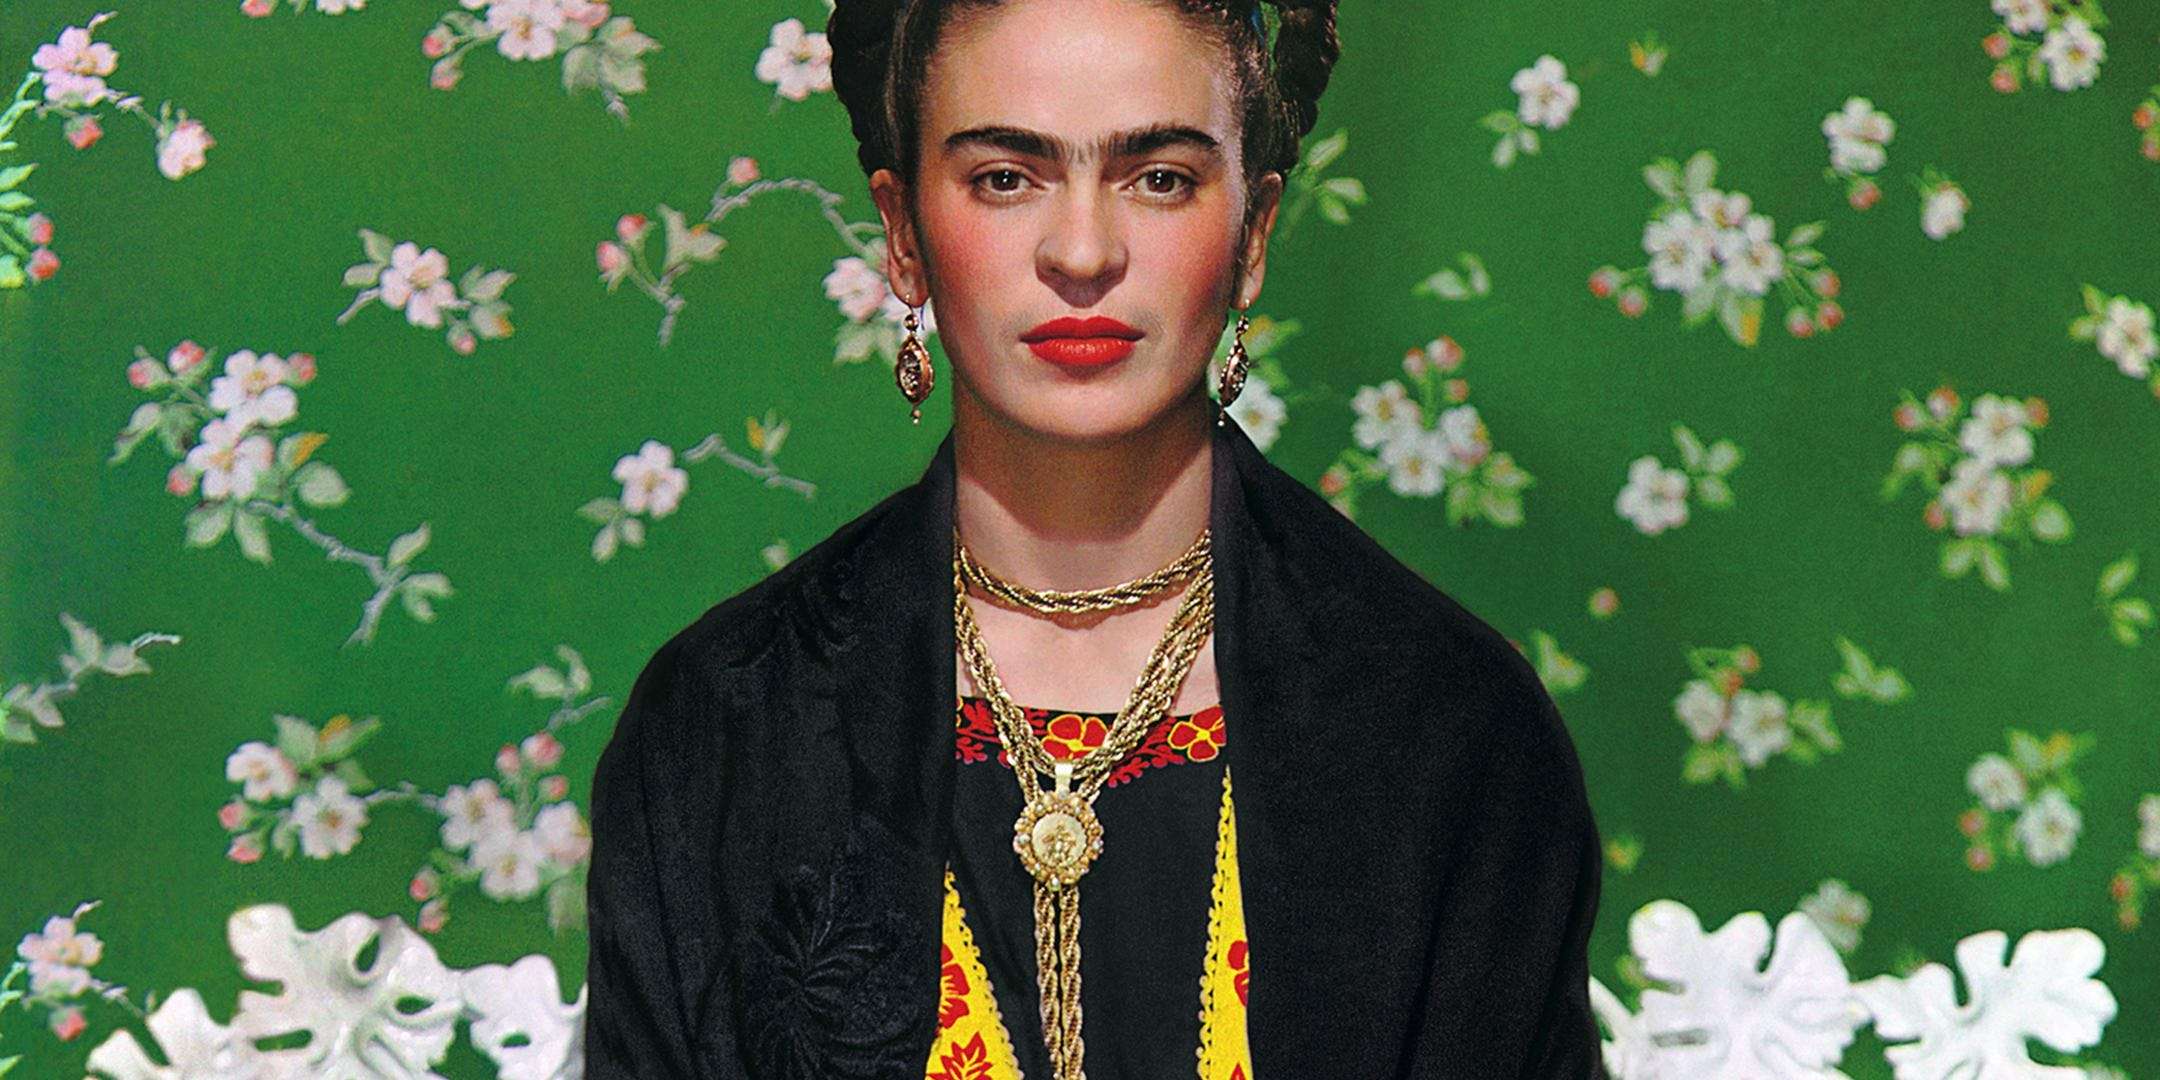 The style loves and art of Frida Kahlo - with Marie-Anne Mancio